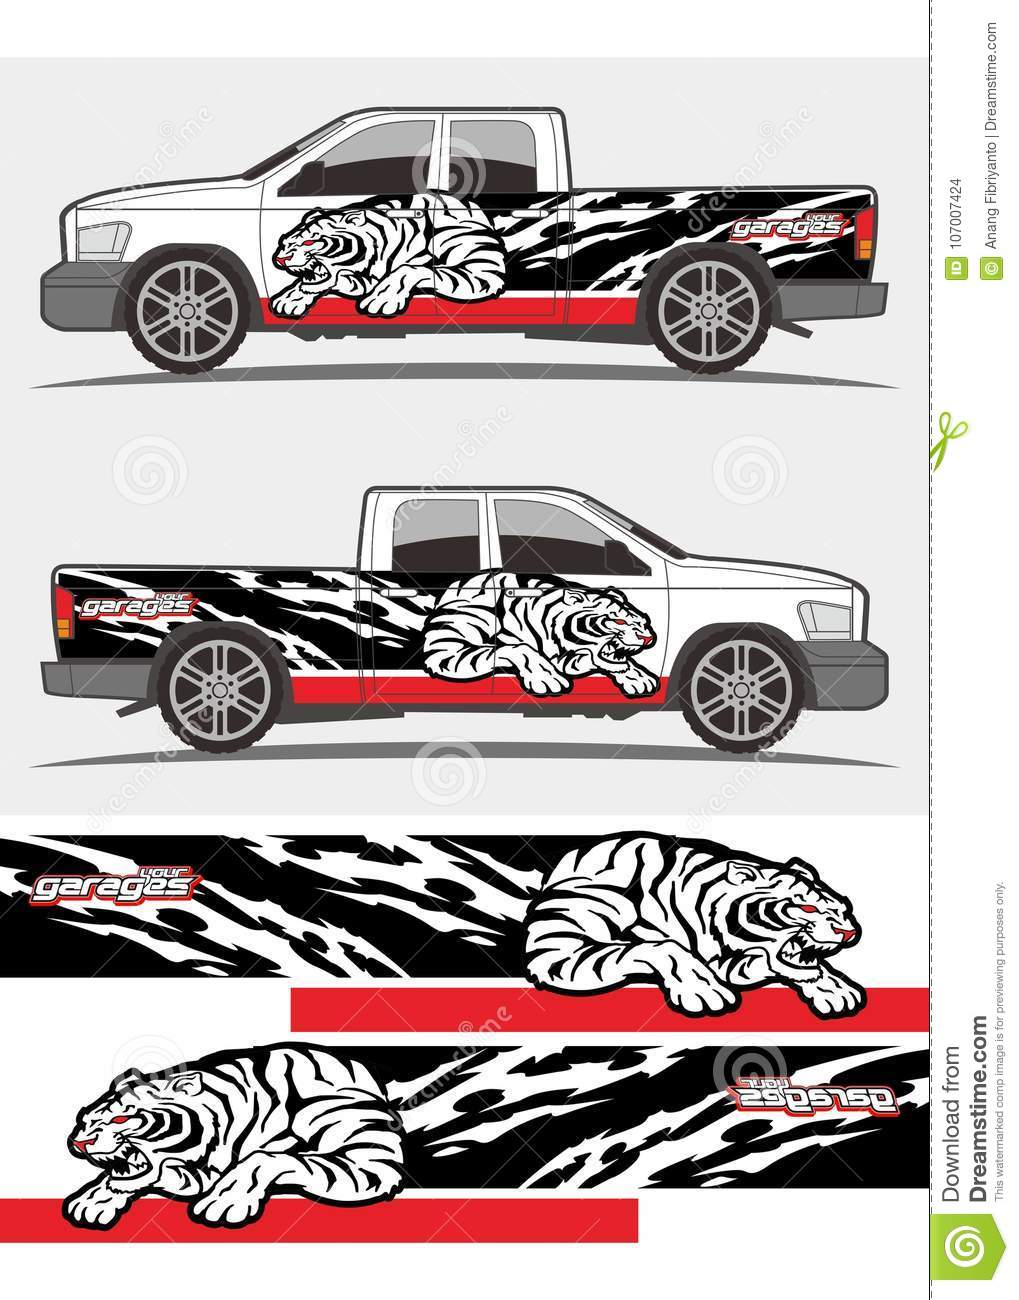 61f23c65169d41 Professional graphics design decal kits for van vehicle and truck Truck and vehicle  decal Graphics Kits design. tribal graphics kits for truck and other ...